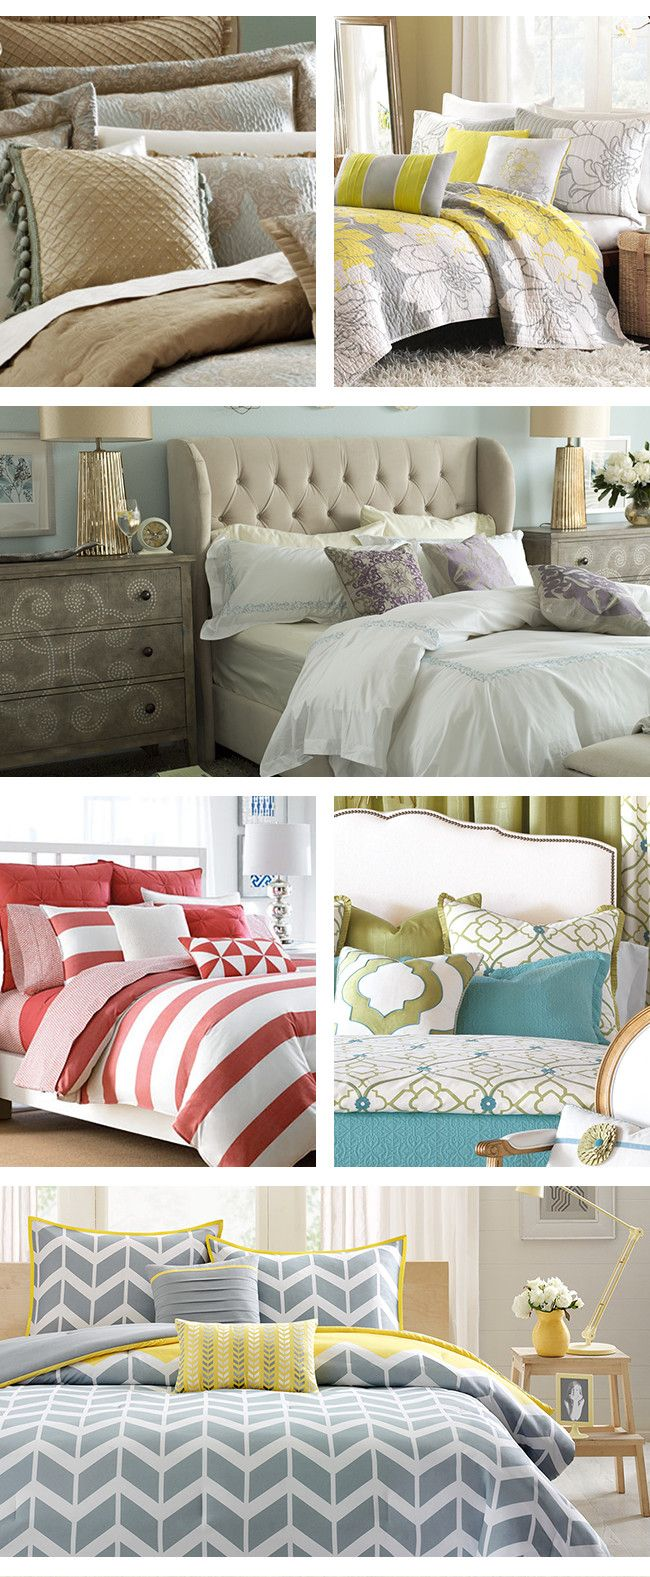 From colorful comforters to stylish furniture  we ll help you create the  bedroom of. From colorful comforters to stylish furniture  we ll help you